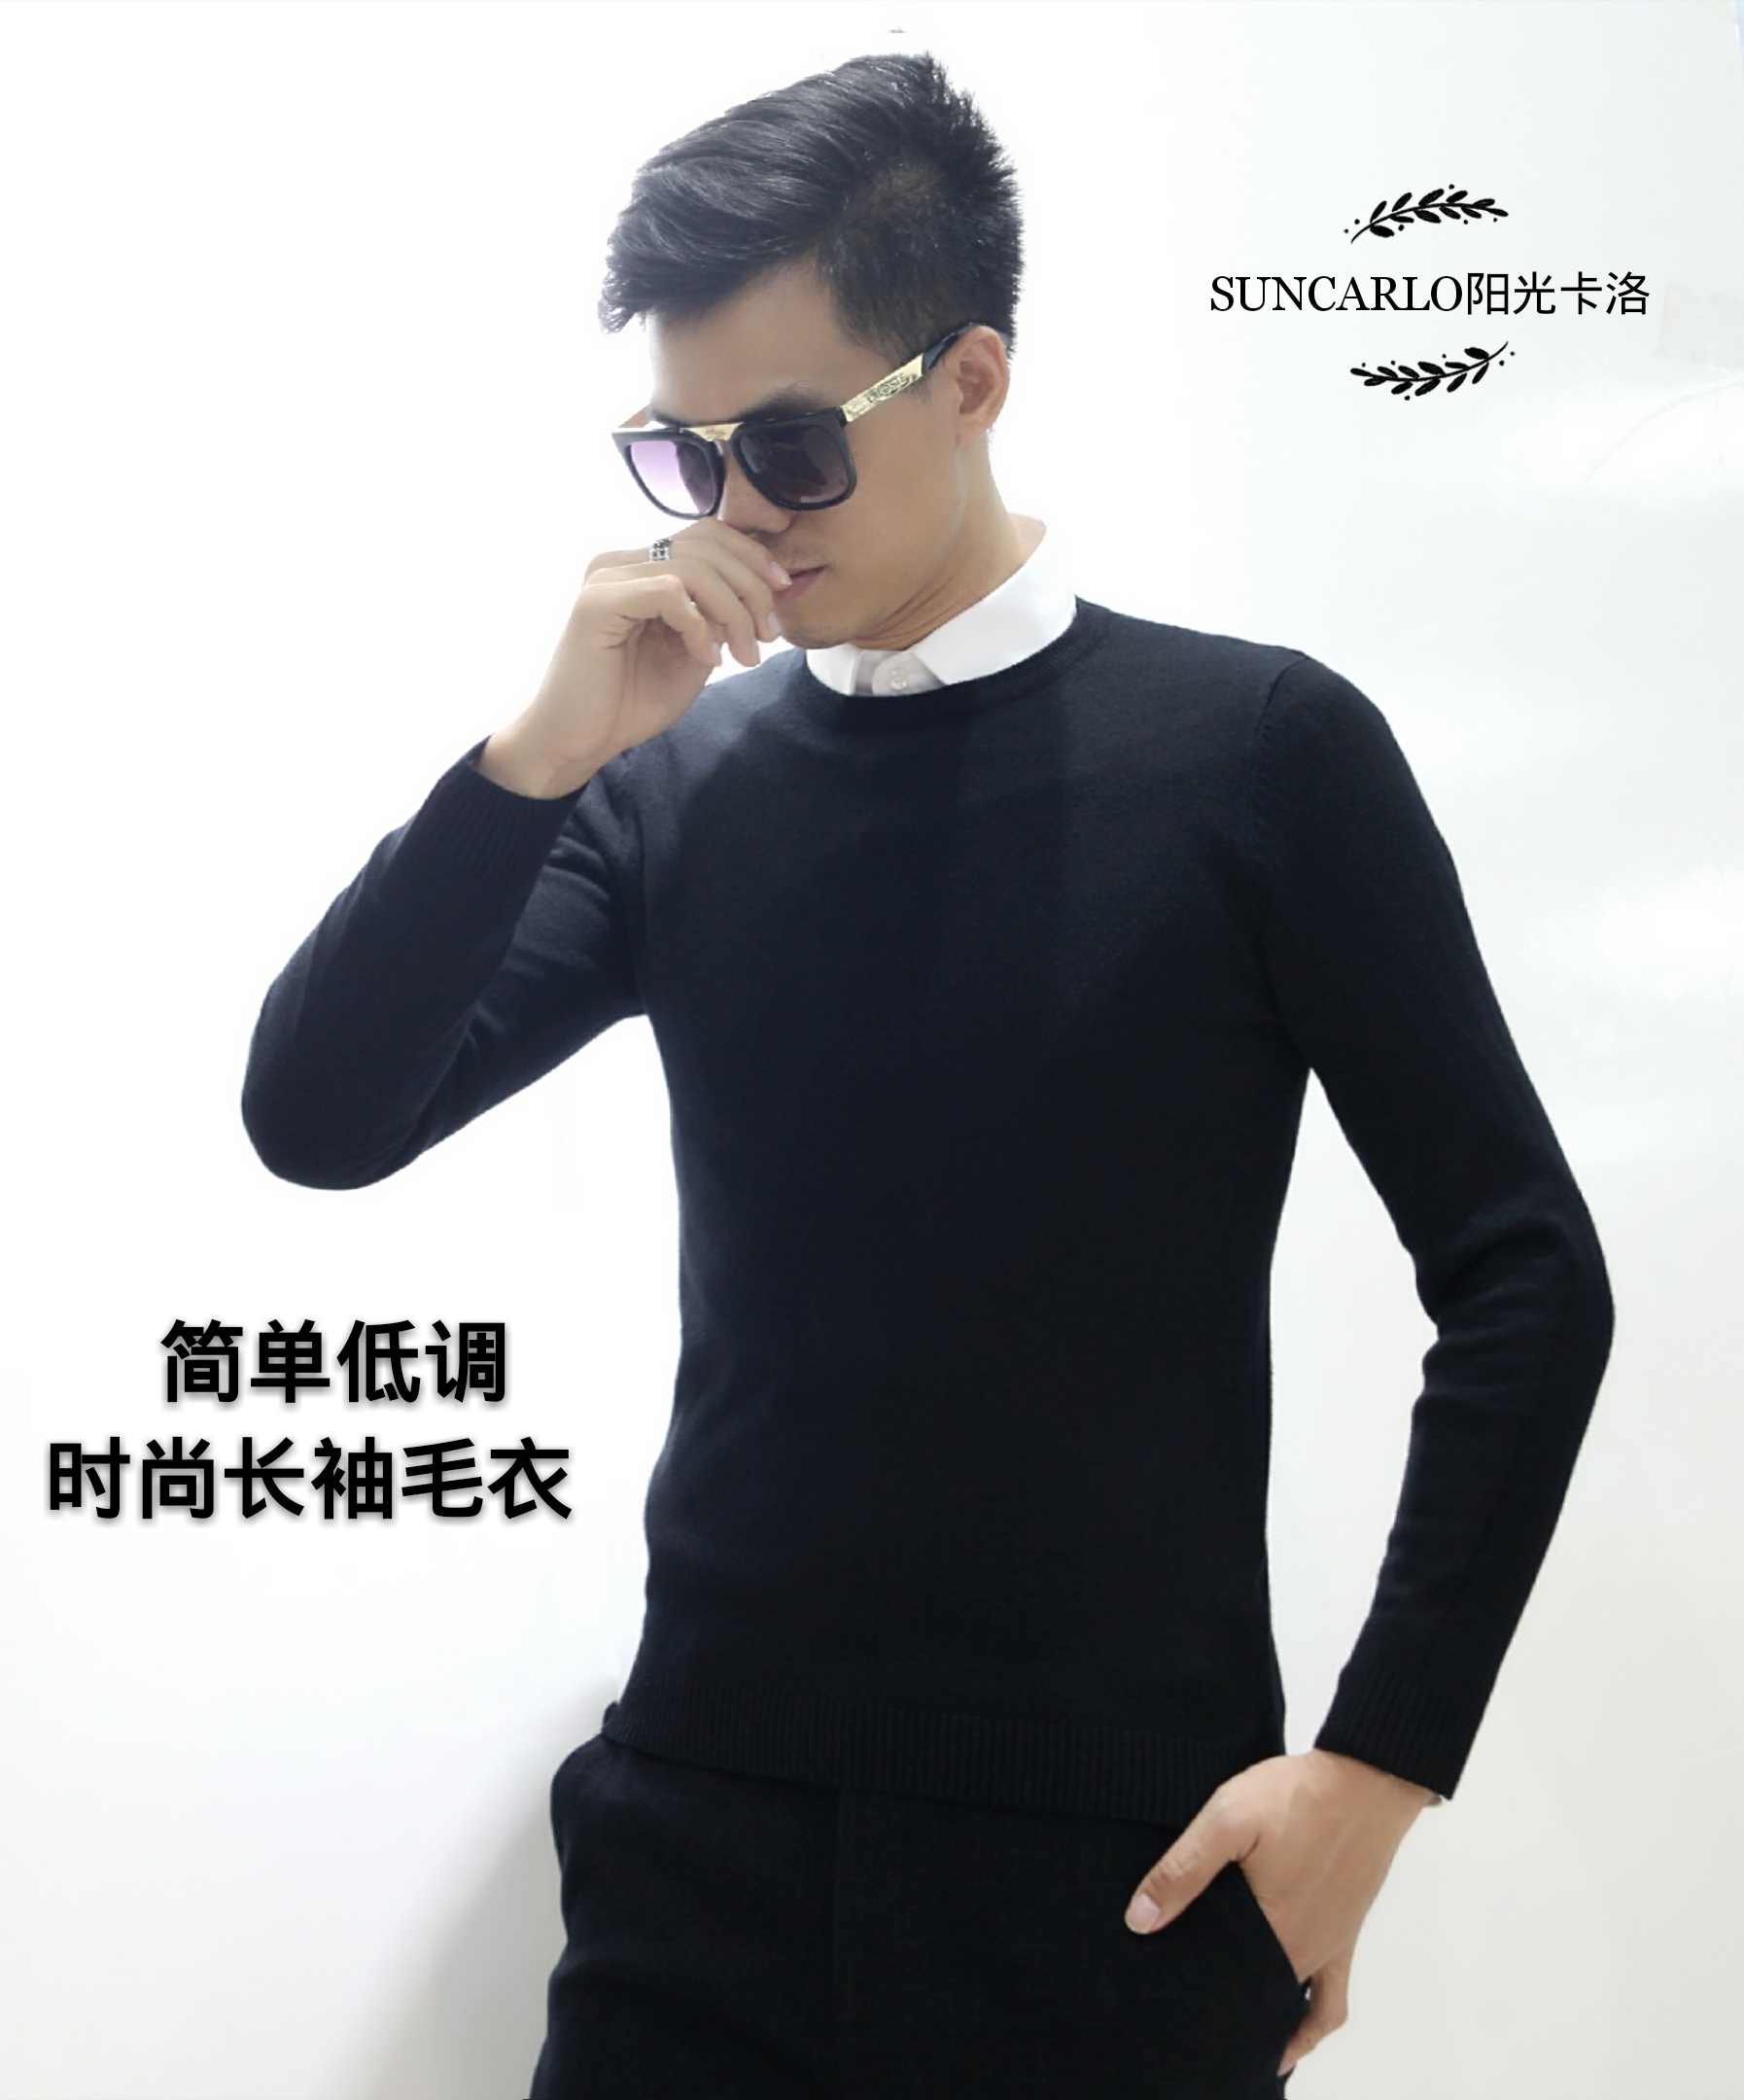 Crew neck new black simple Pullover mens long sleeve bottomed sweater slim autumn winter European mens